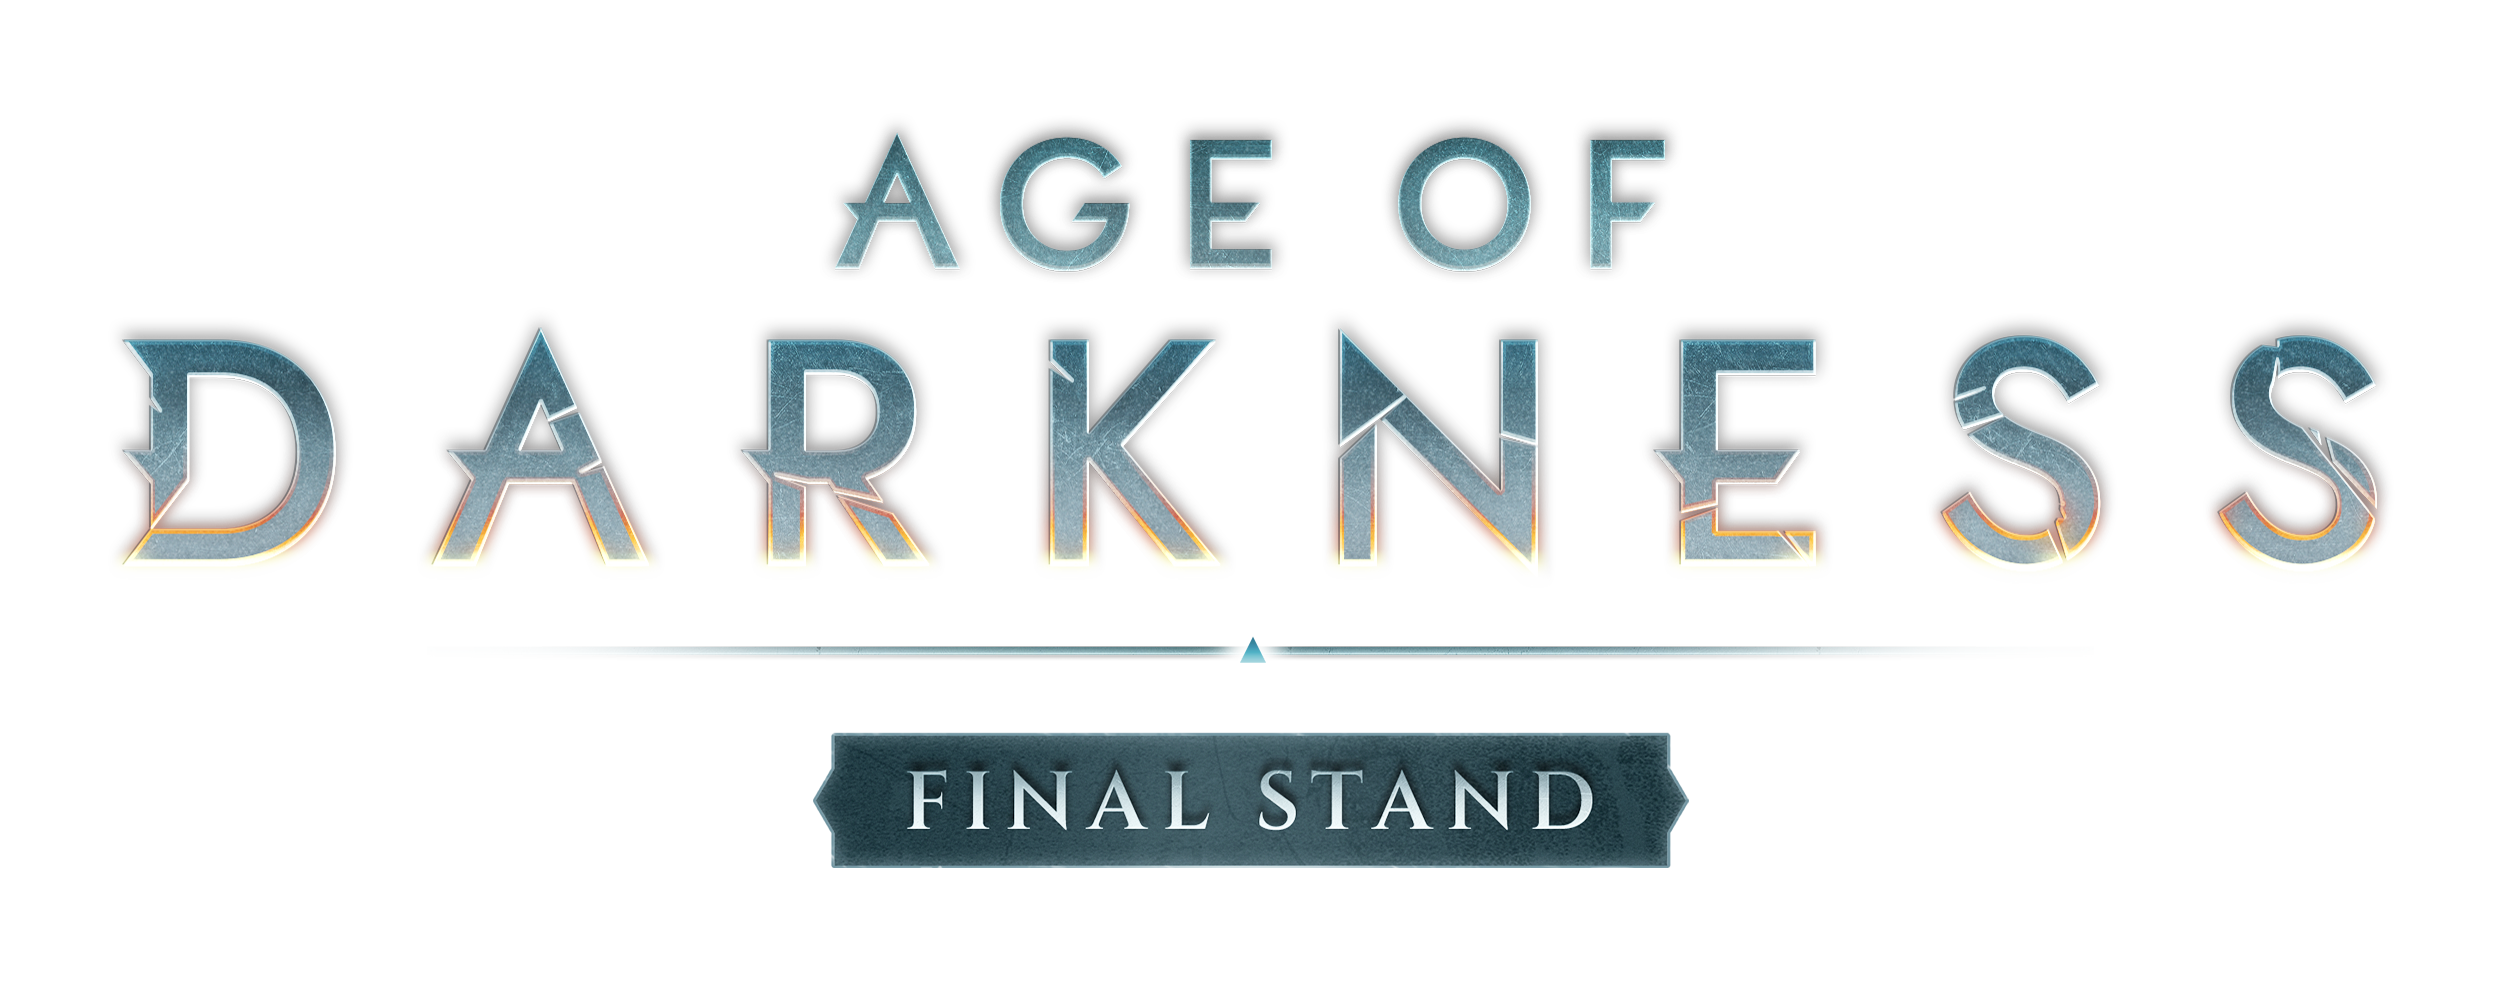 Age of Darkness launches today!